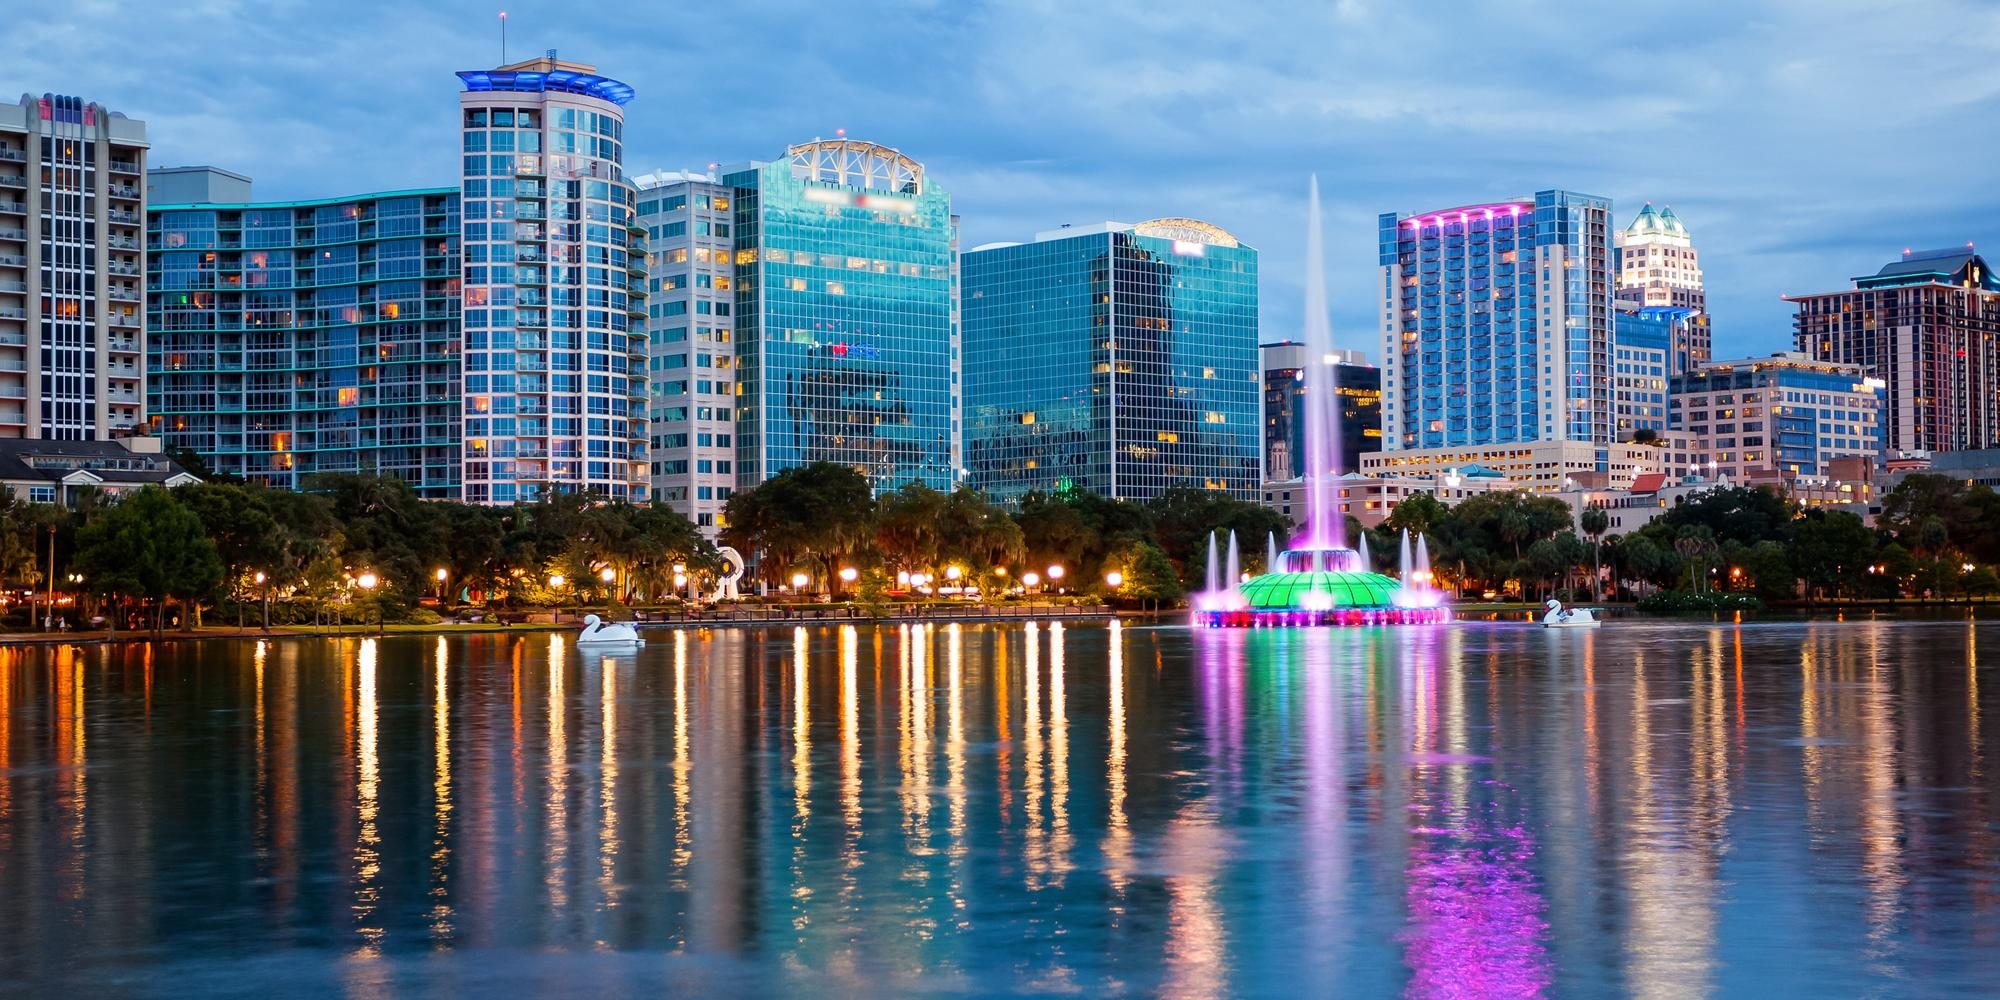 10 Things To Do In Orlando Besides Theme Parks Fodors Travel Guide